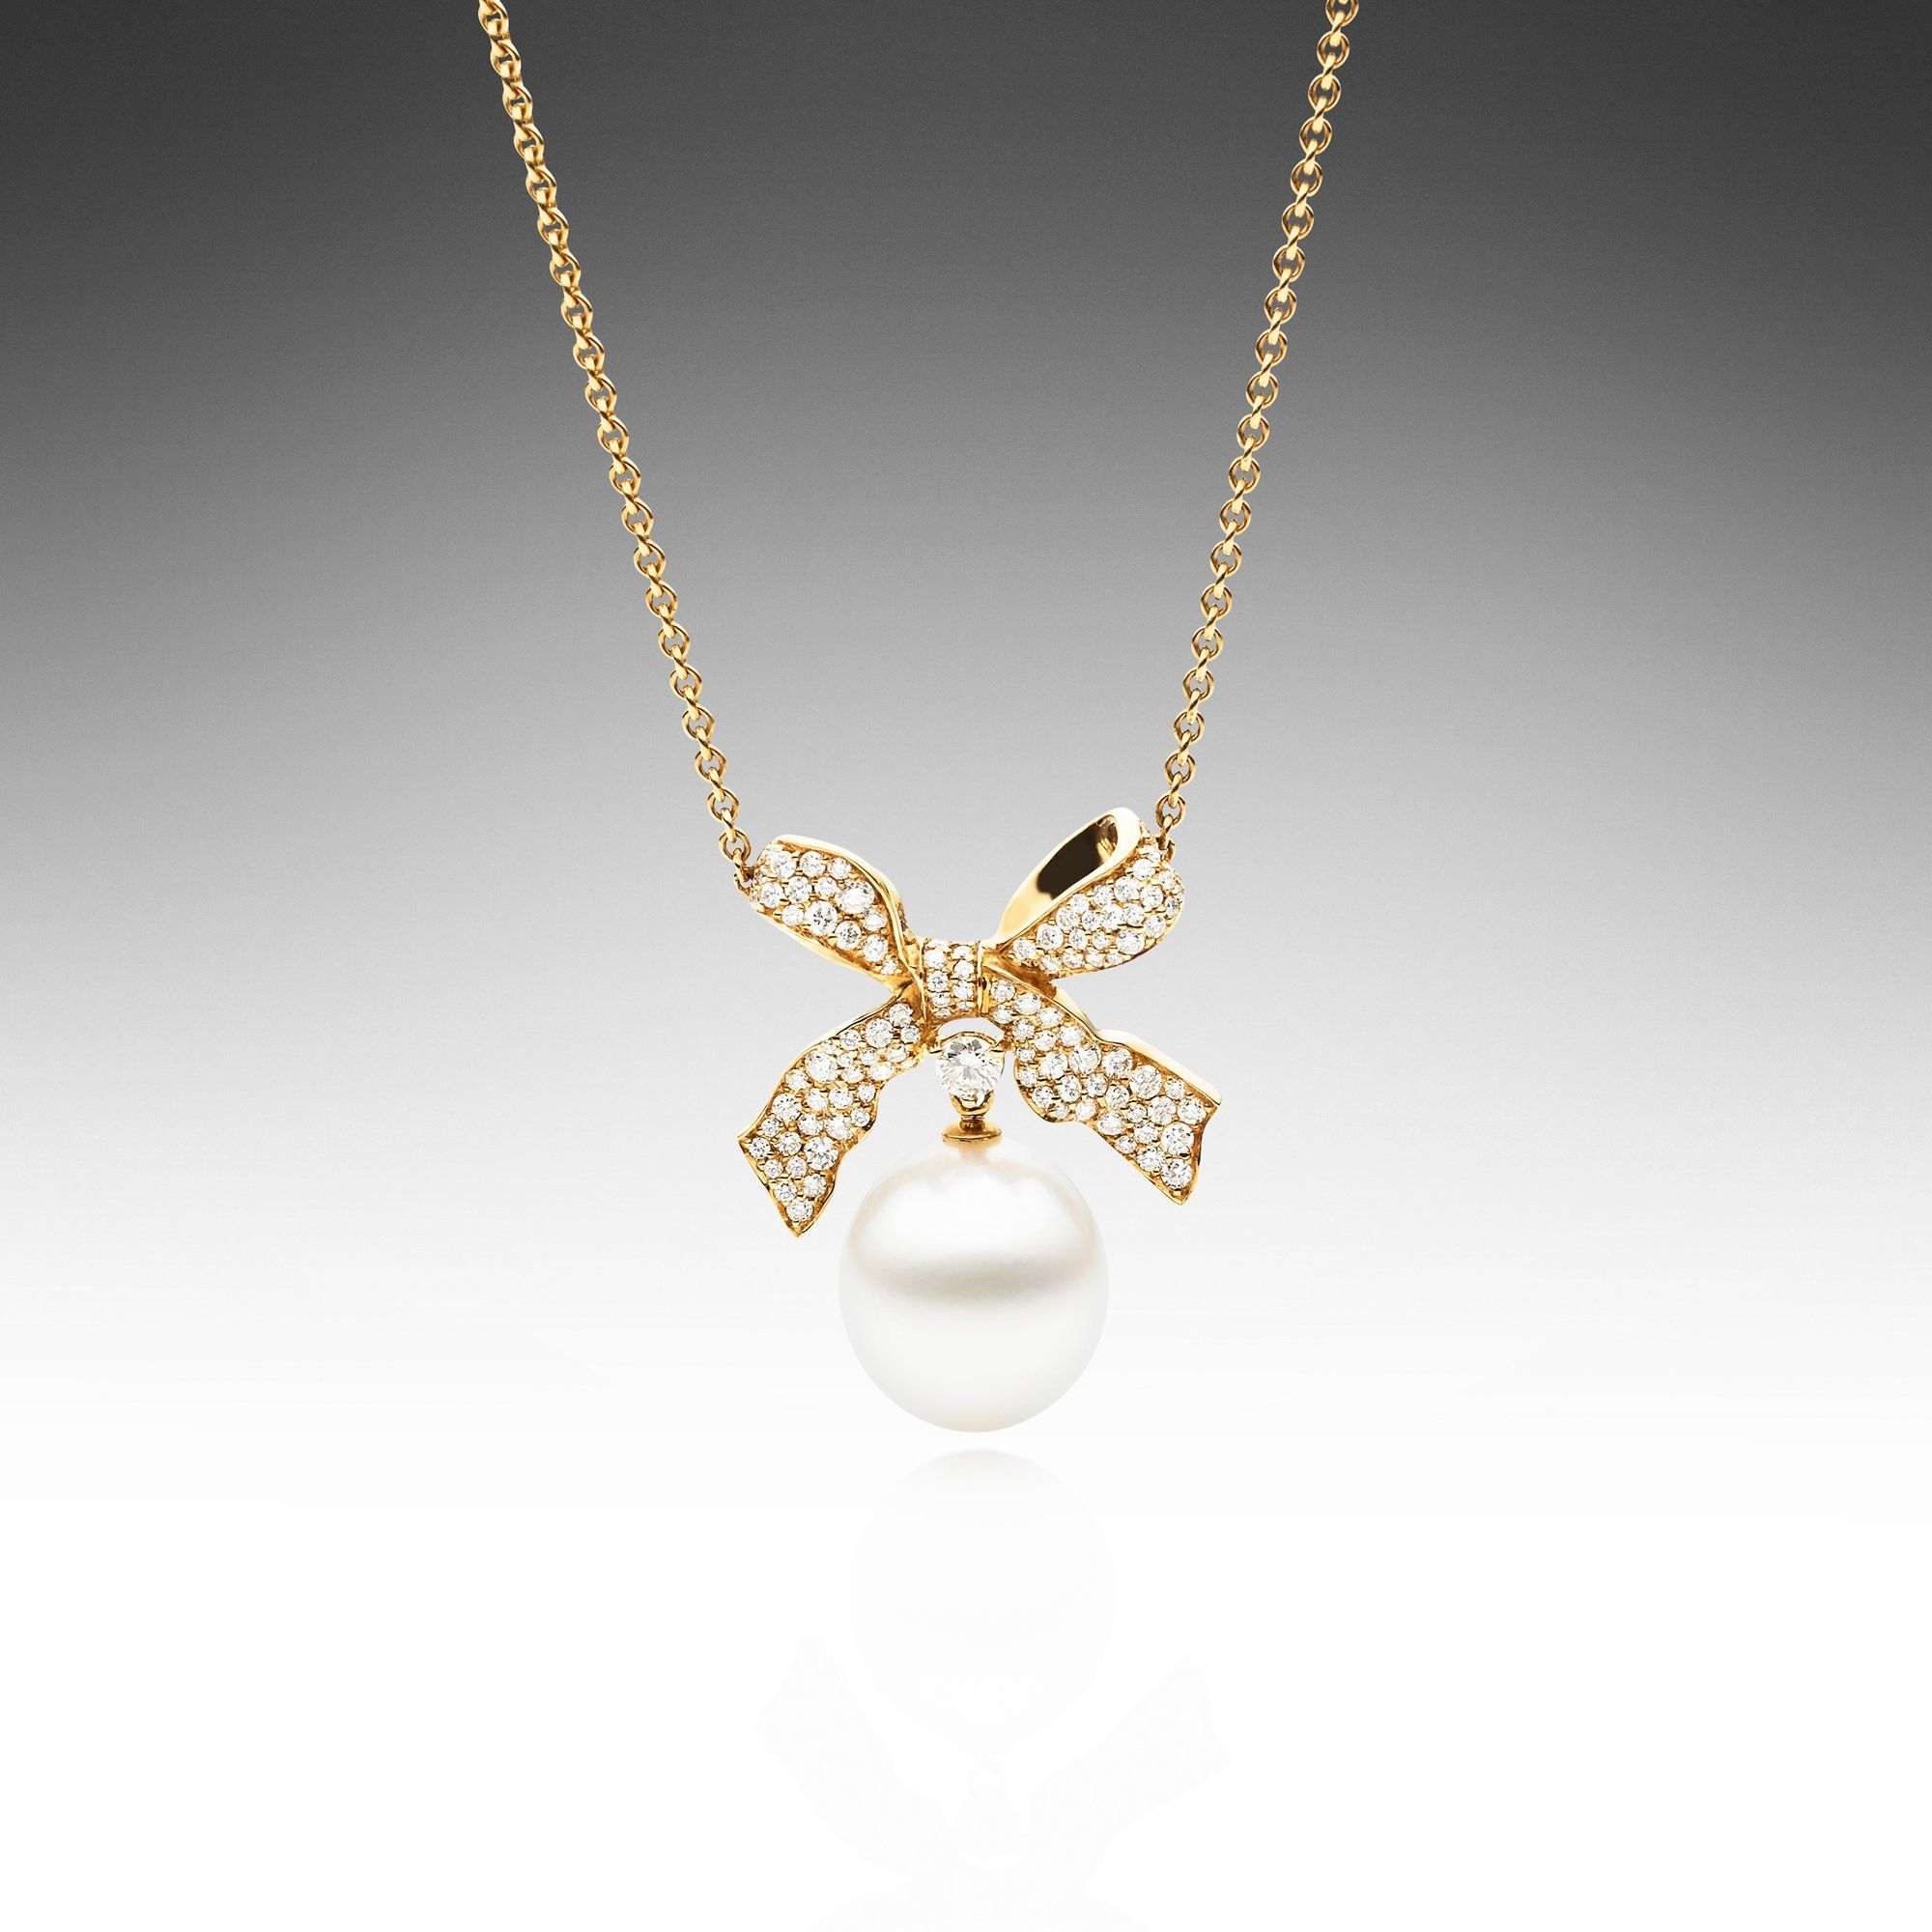 Ribbon Bow Necklace - Paspaley Pearls - The Most Beautiful Pearls ...